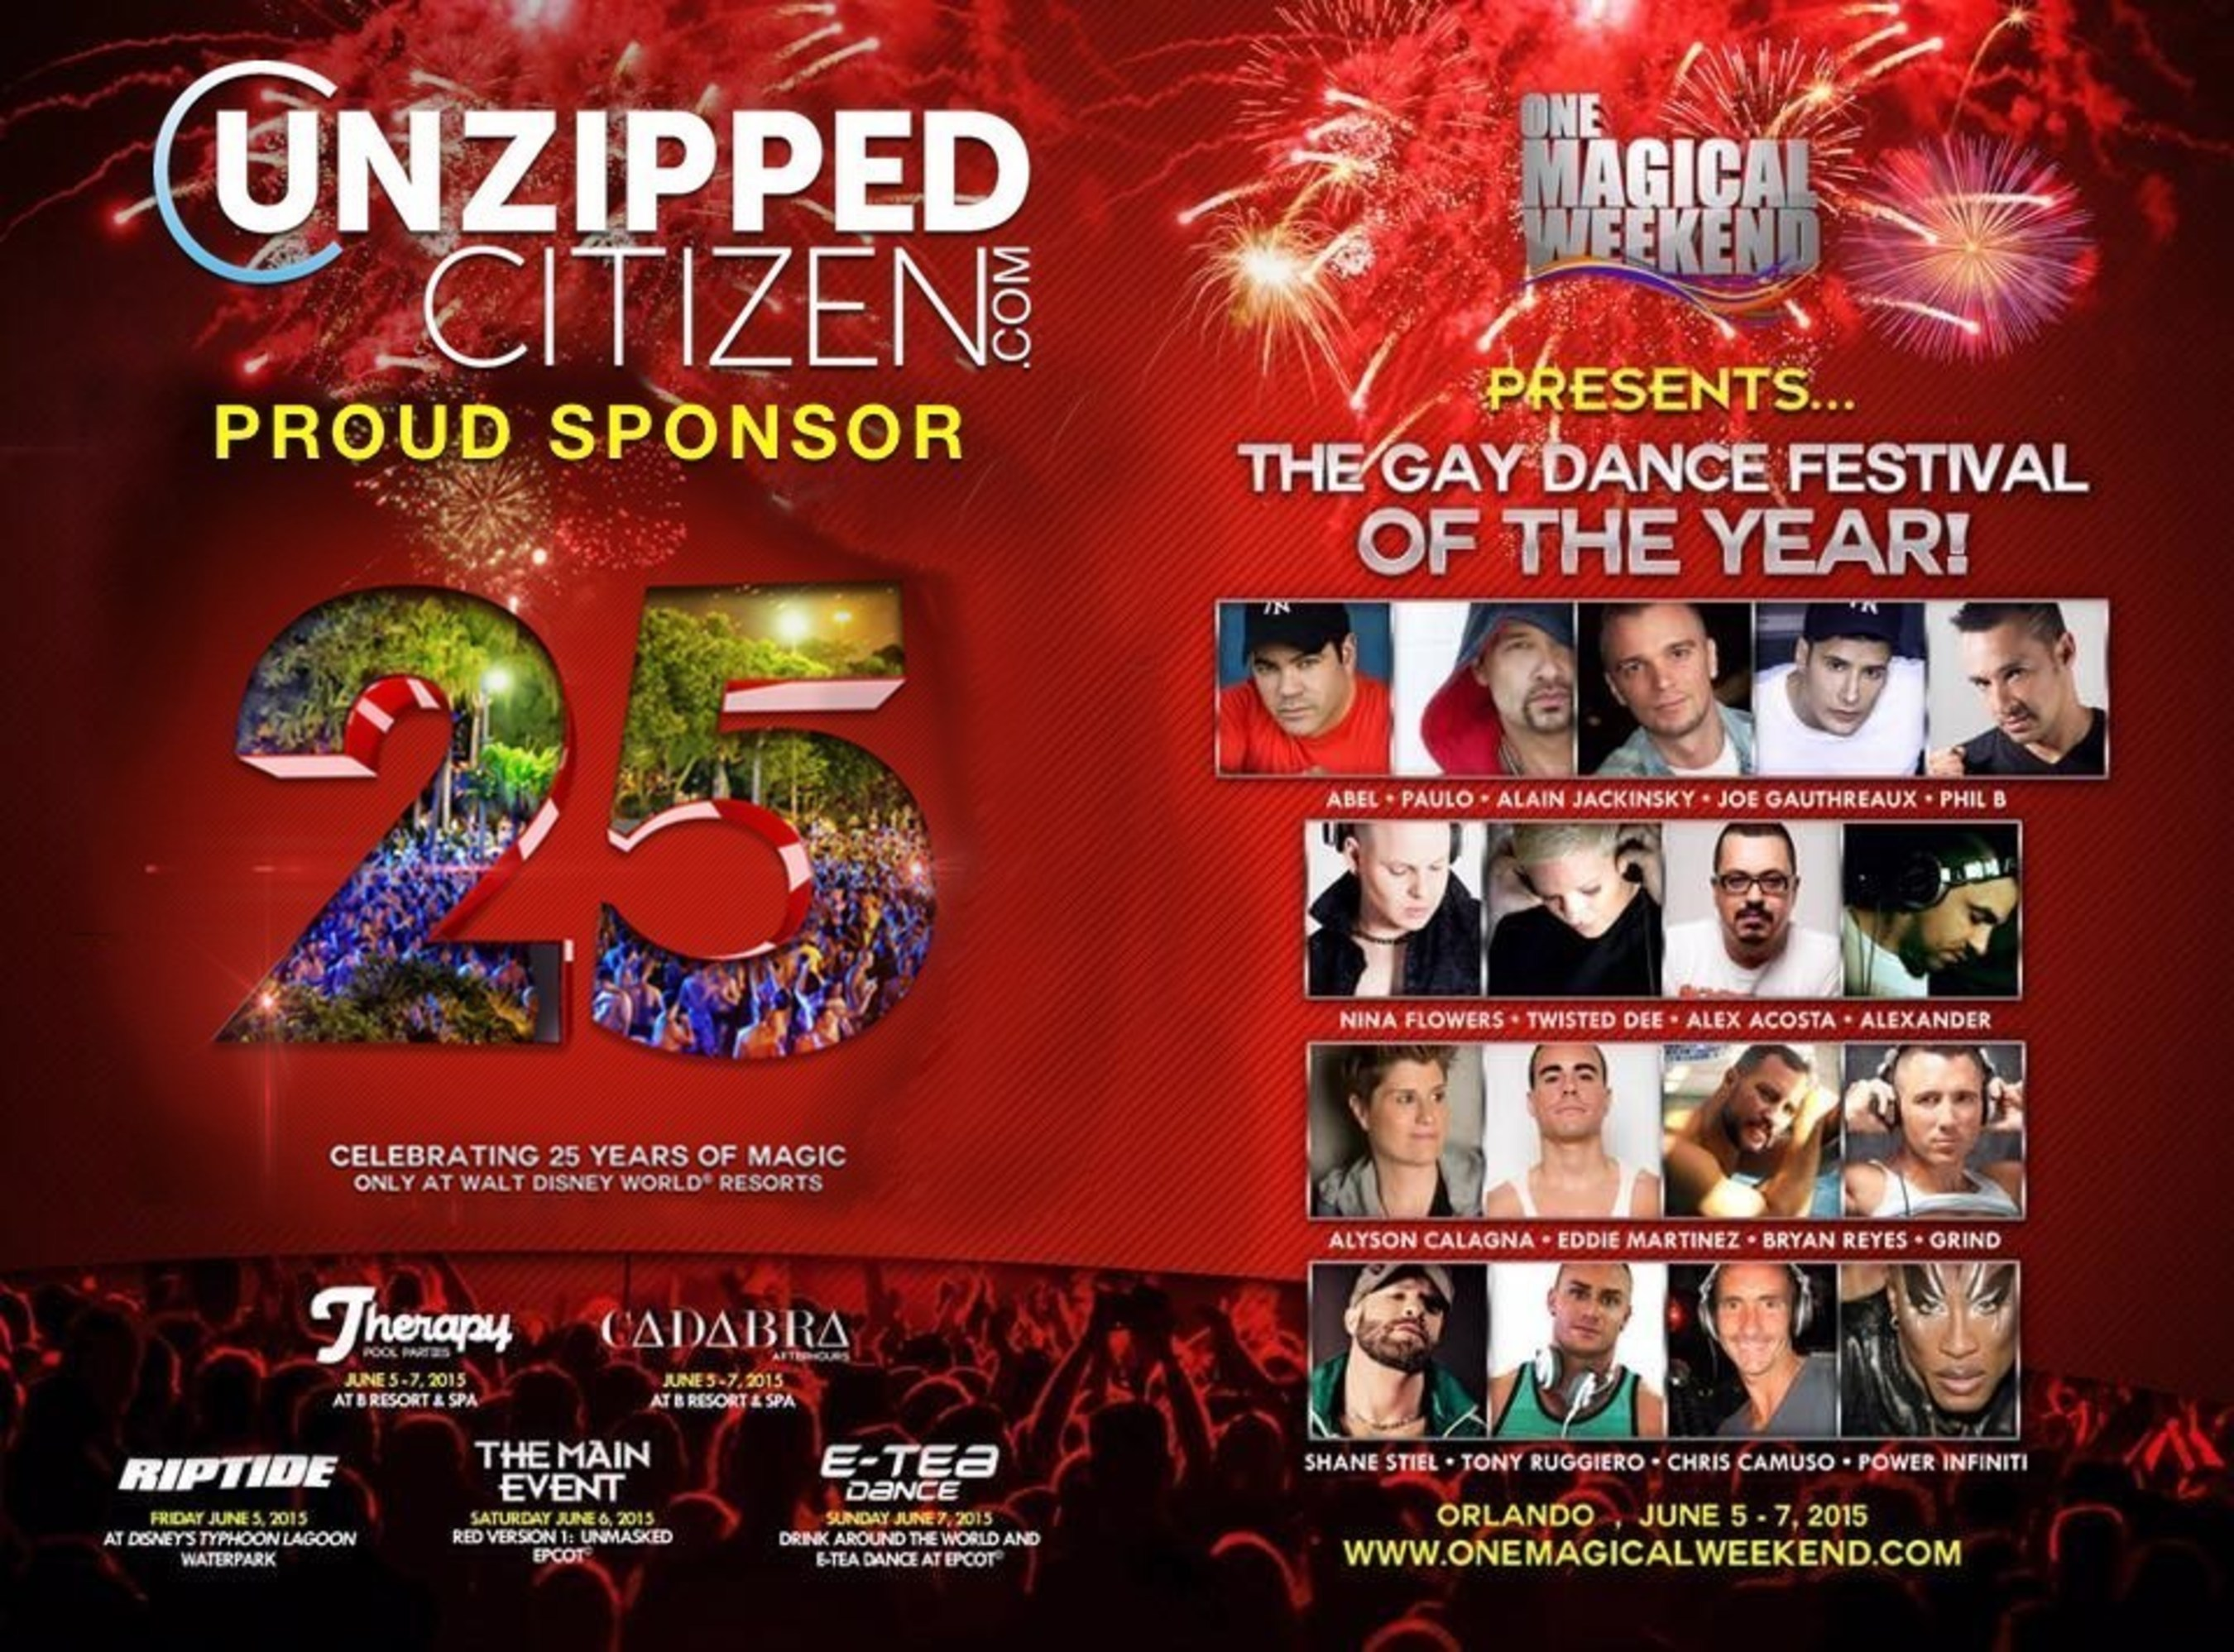 Unzipped Citizen Personifies Brand And Sponsors 'One Magical Weekend' in Orlando, Florida